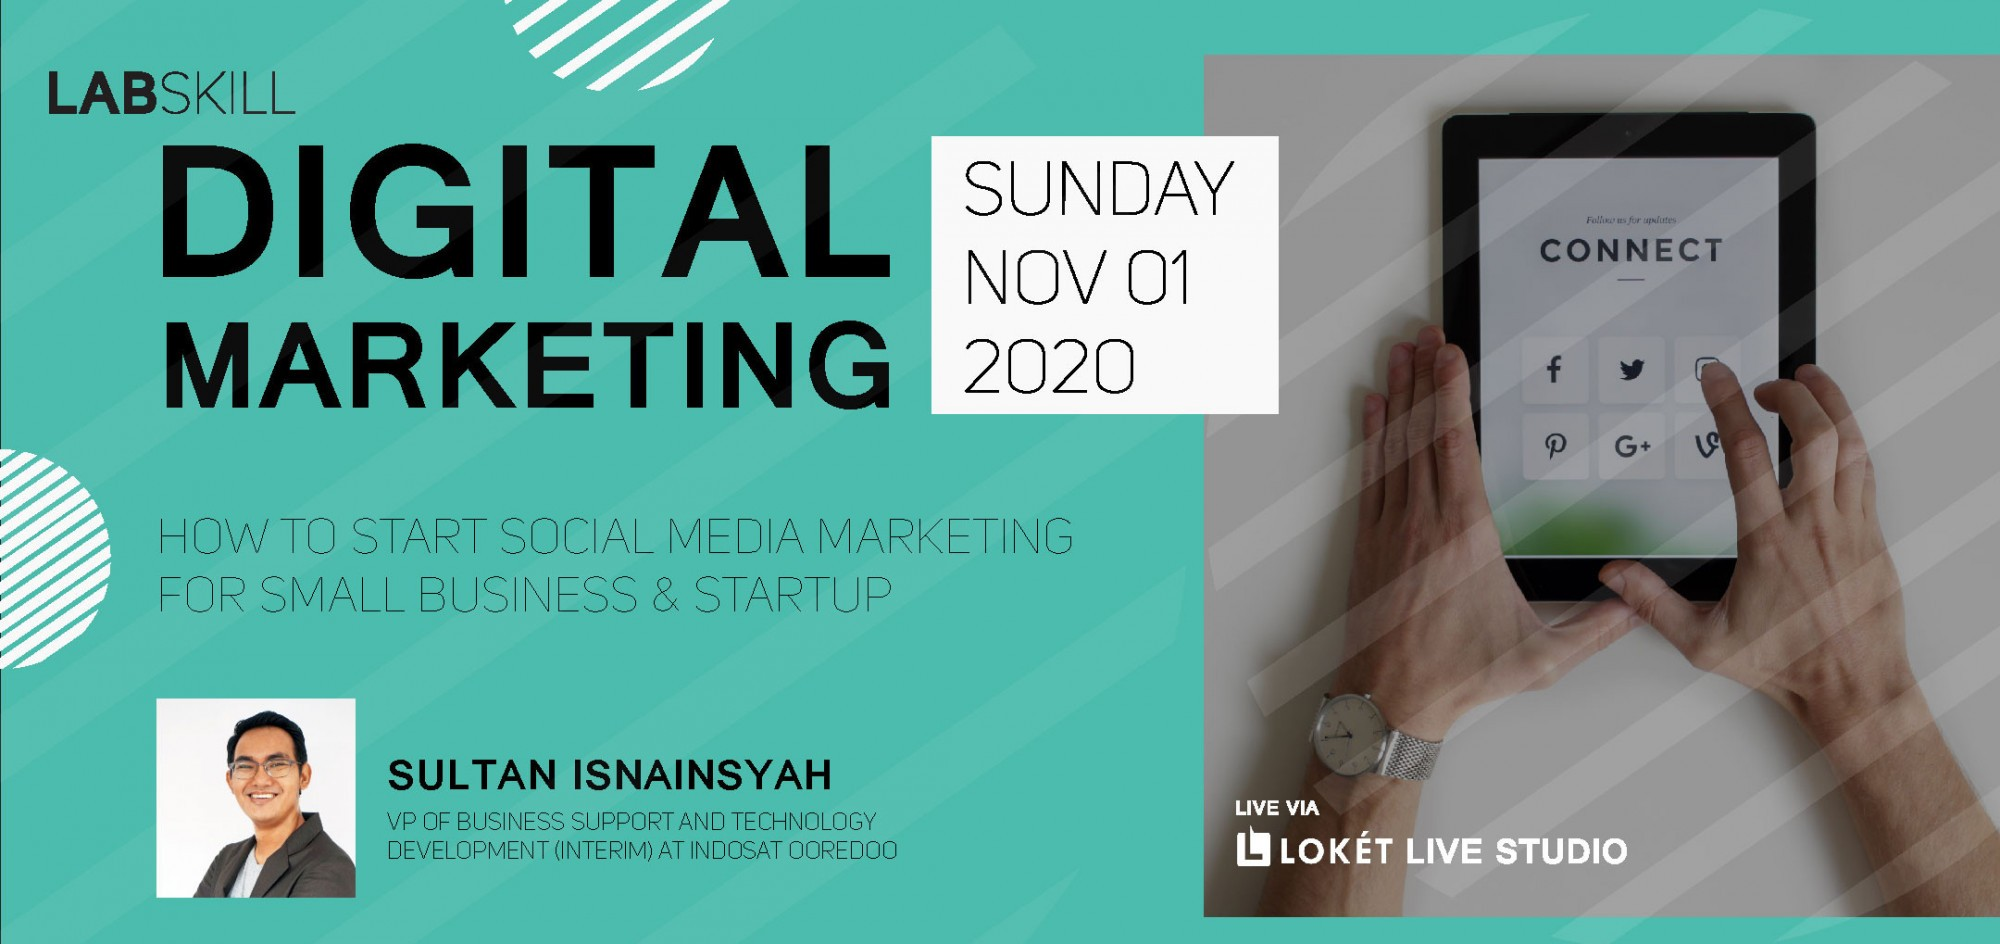 Digital Marketing Lab: How To Start Social Media Marketing For Small Business & StartUp